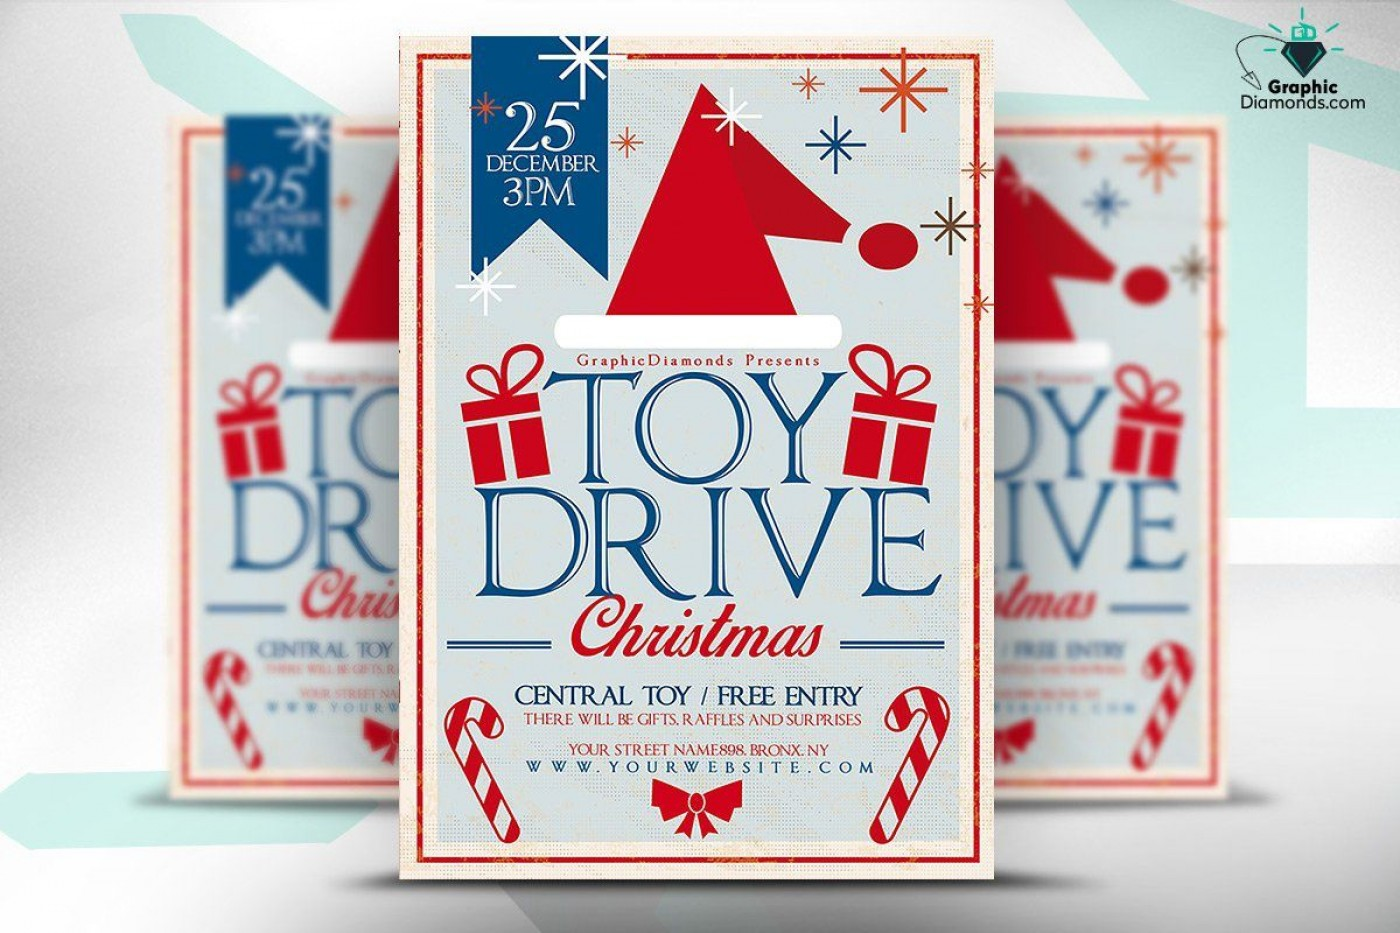 009 Sensational Toy Drive Flyer Template Free Image  Download Christma1400